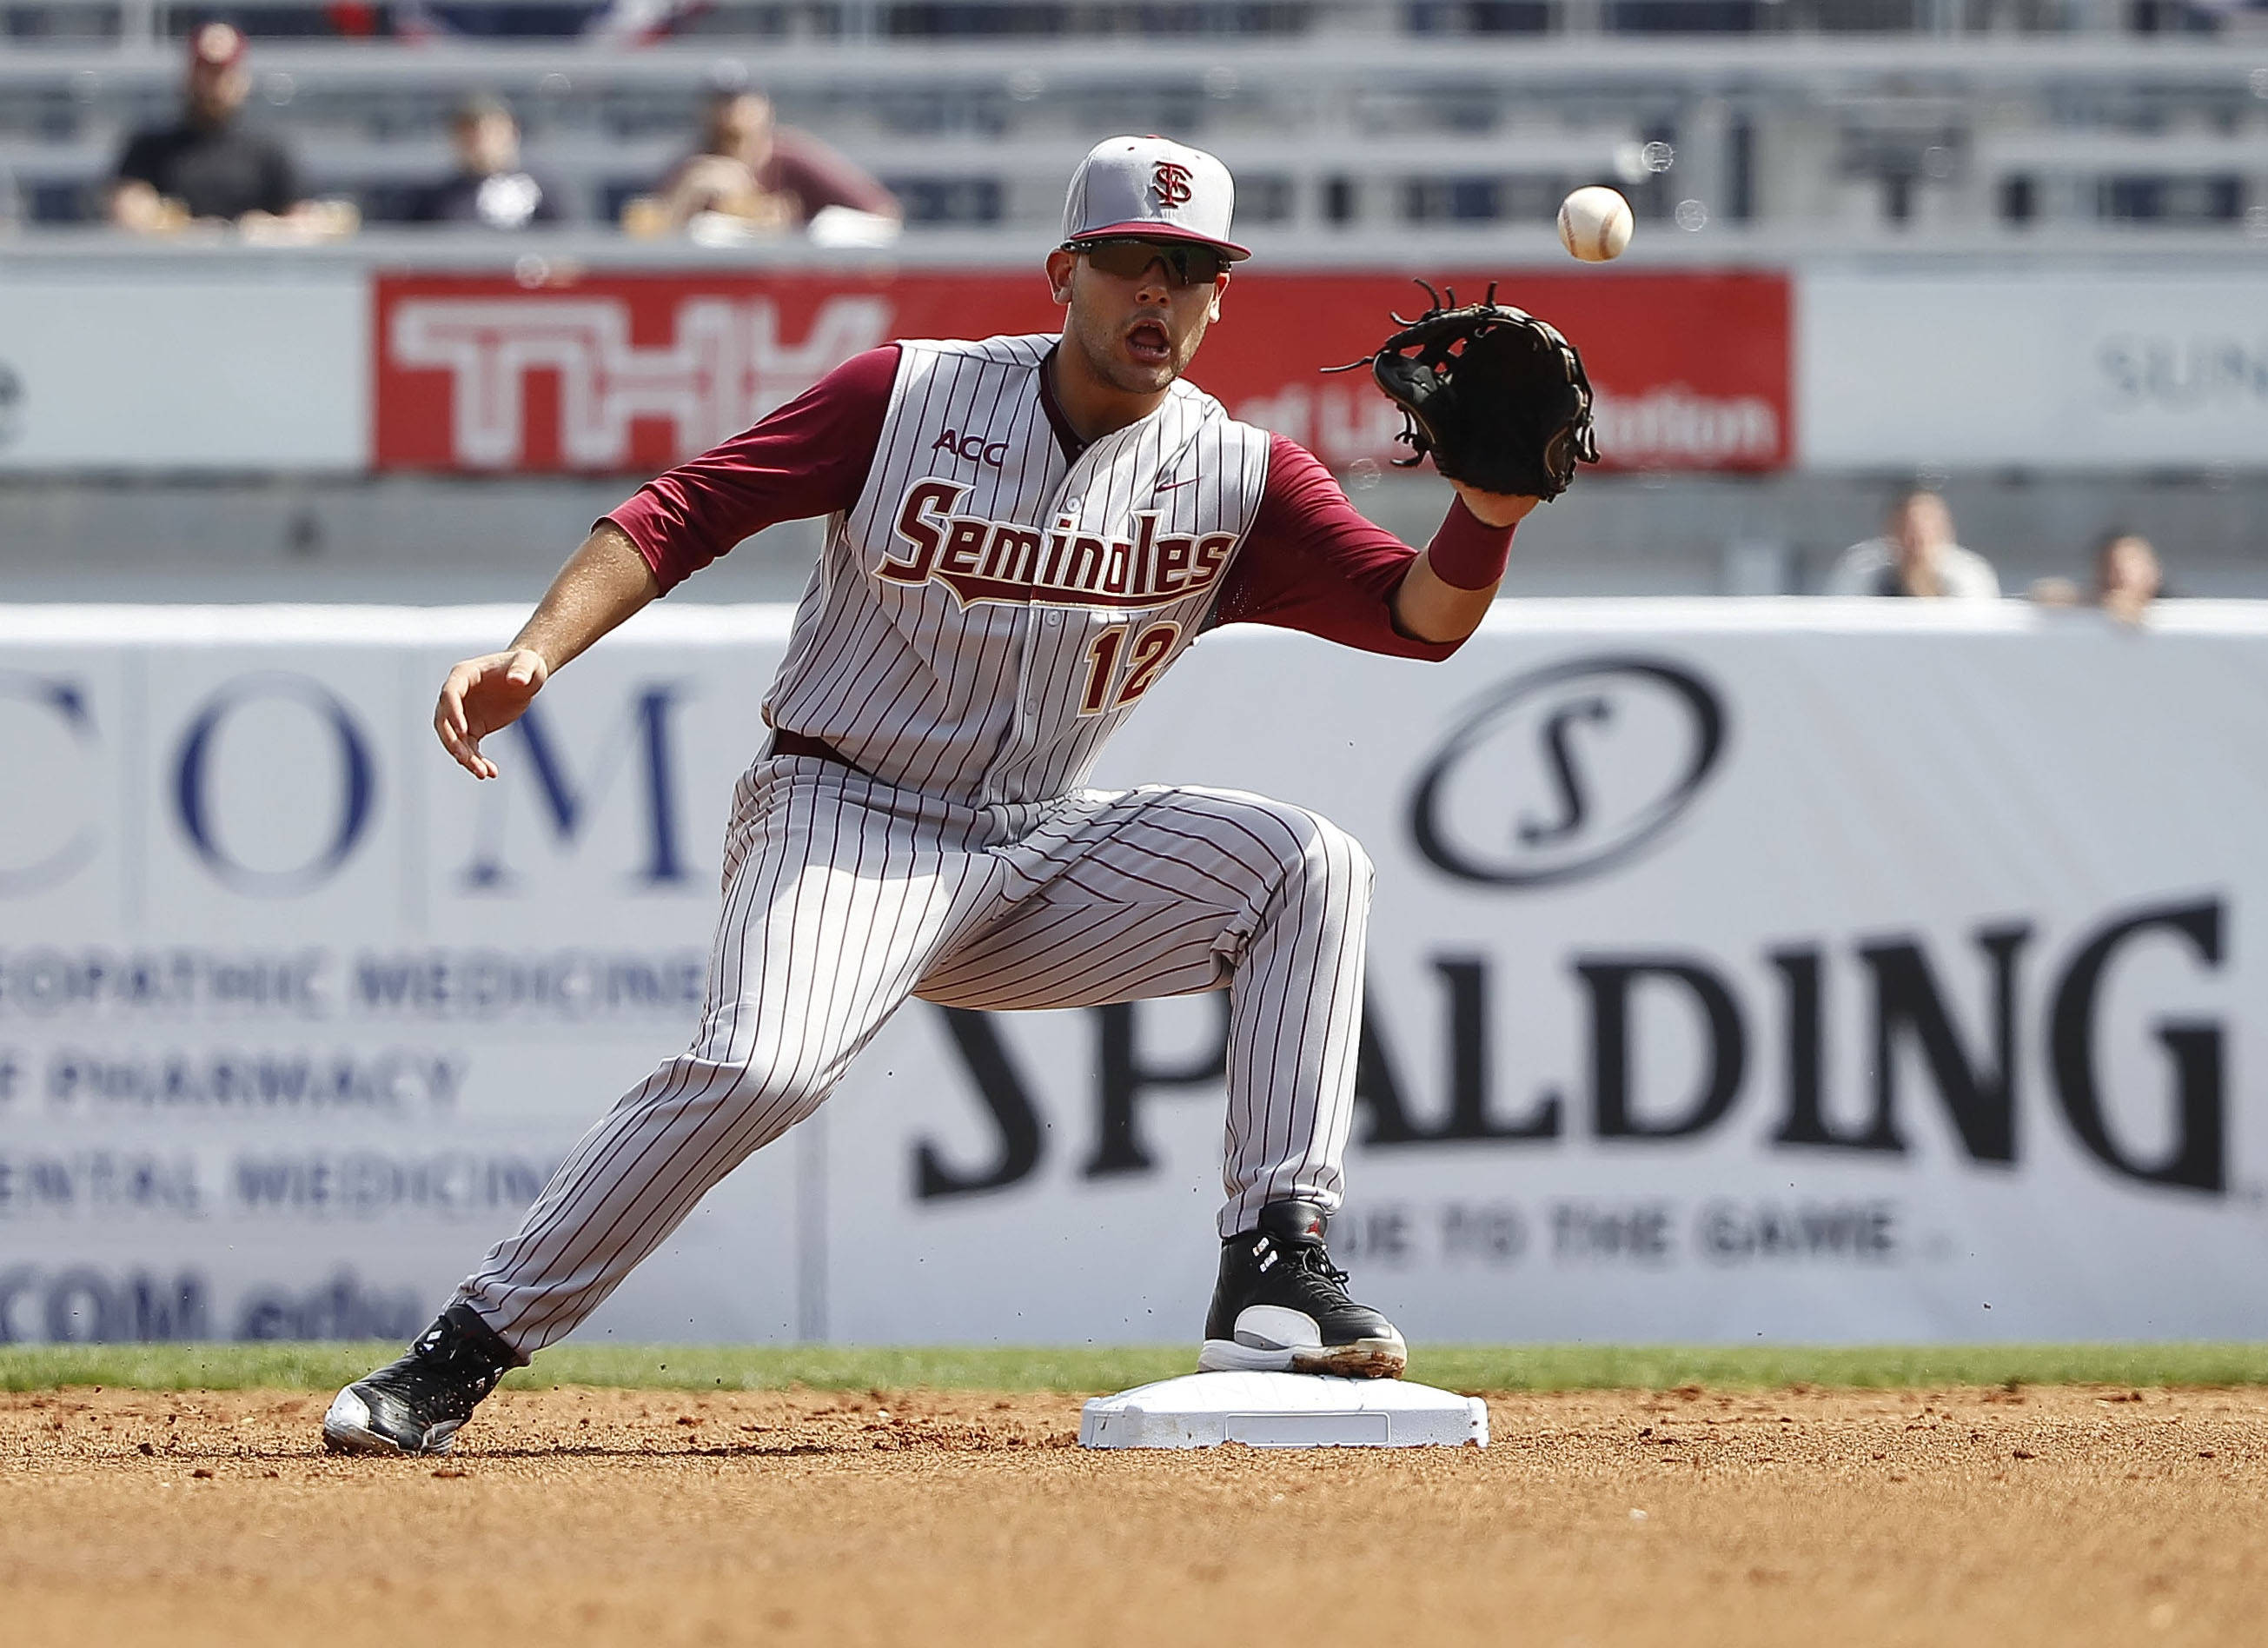 Feb 25, 2014; Tampa, FL, USA;  Florida State Seminoles second baseman John Sansone (12) catches the ball and throws it to first base for a double play during the first inning at George M. Steinbrenner Field. Mandatory Credit: Kim Klement-USA TODAY Sports